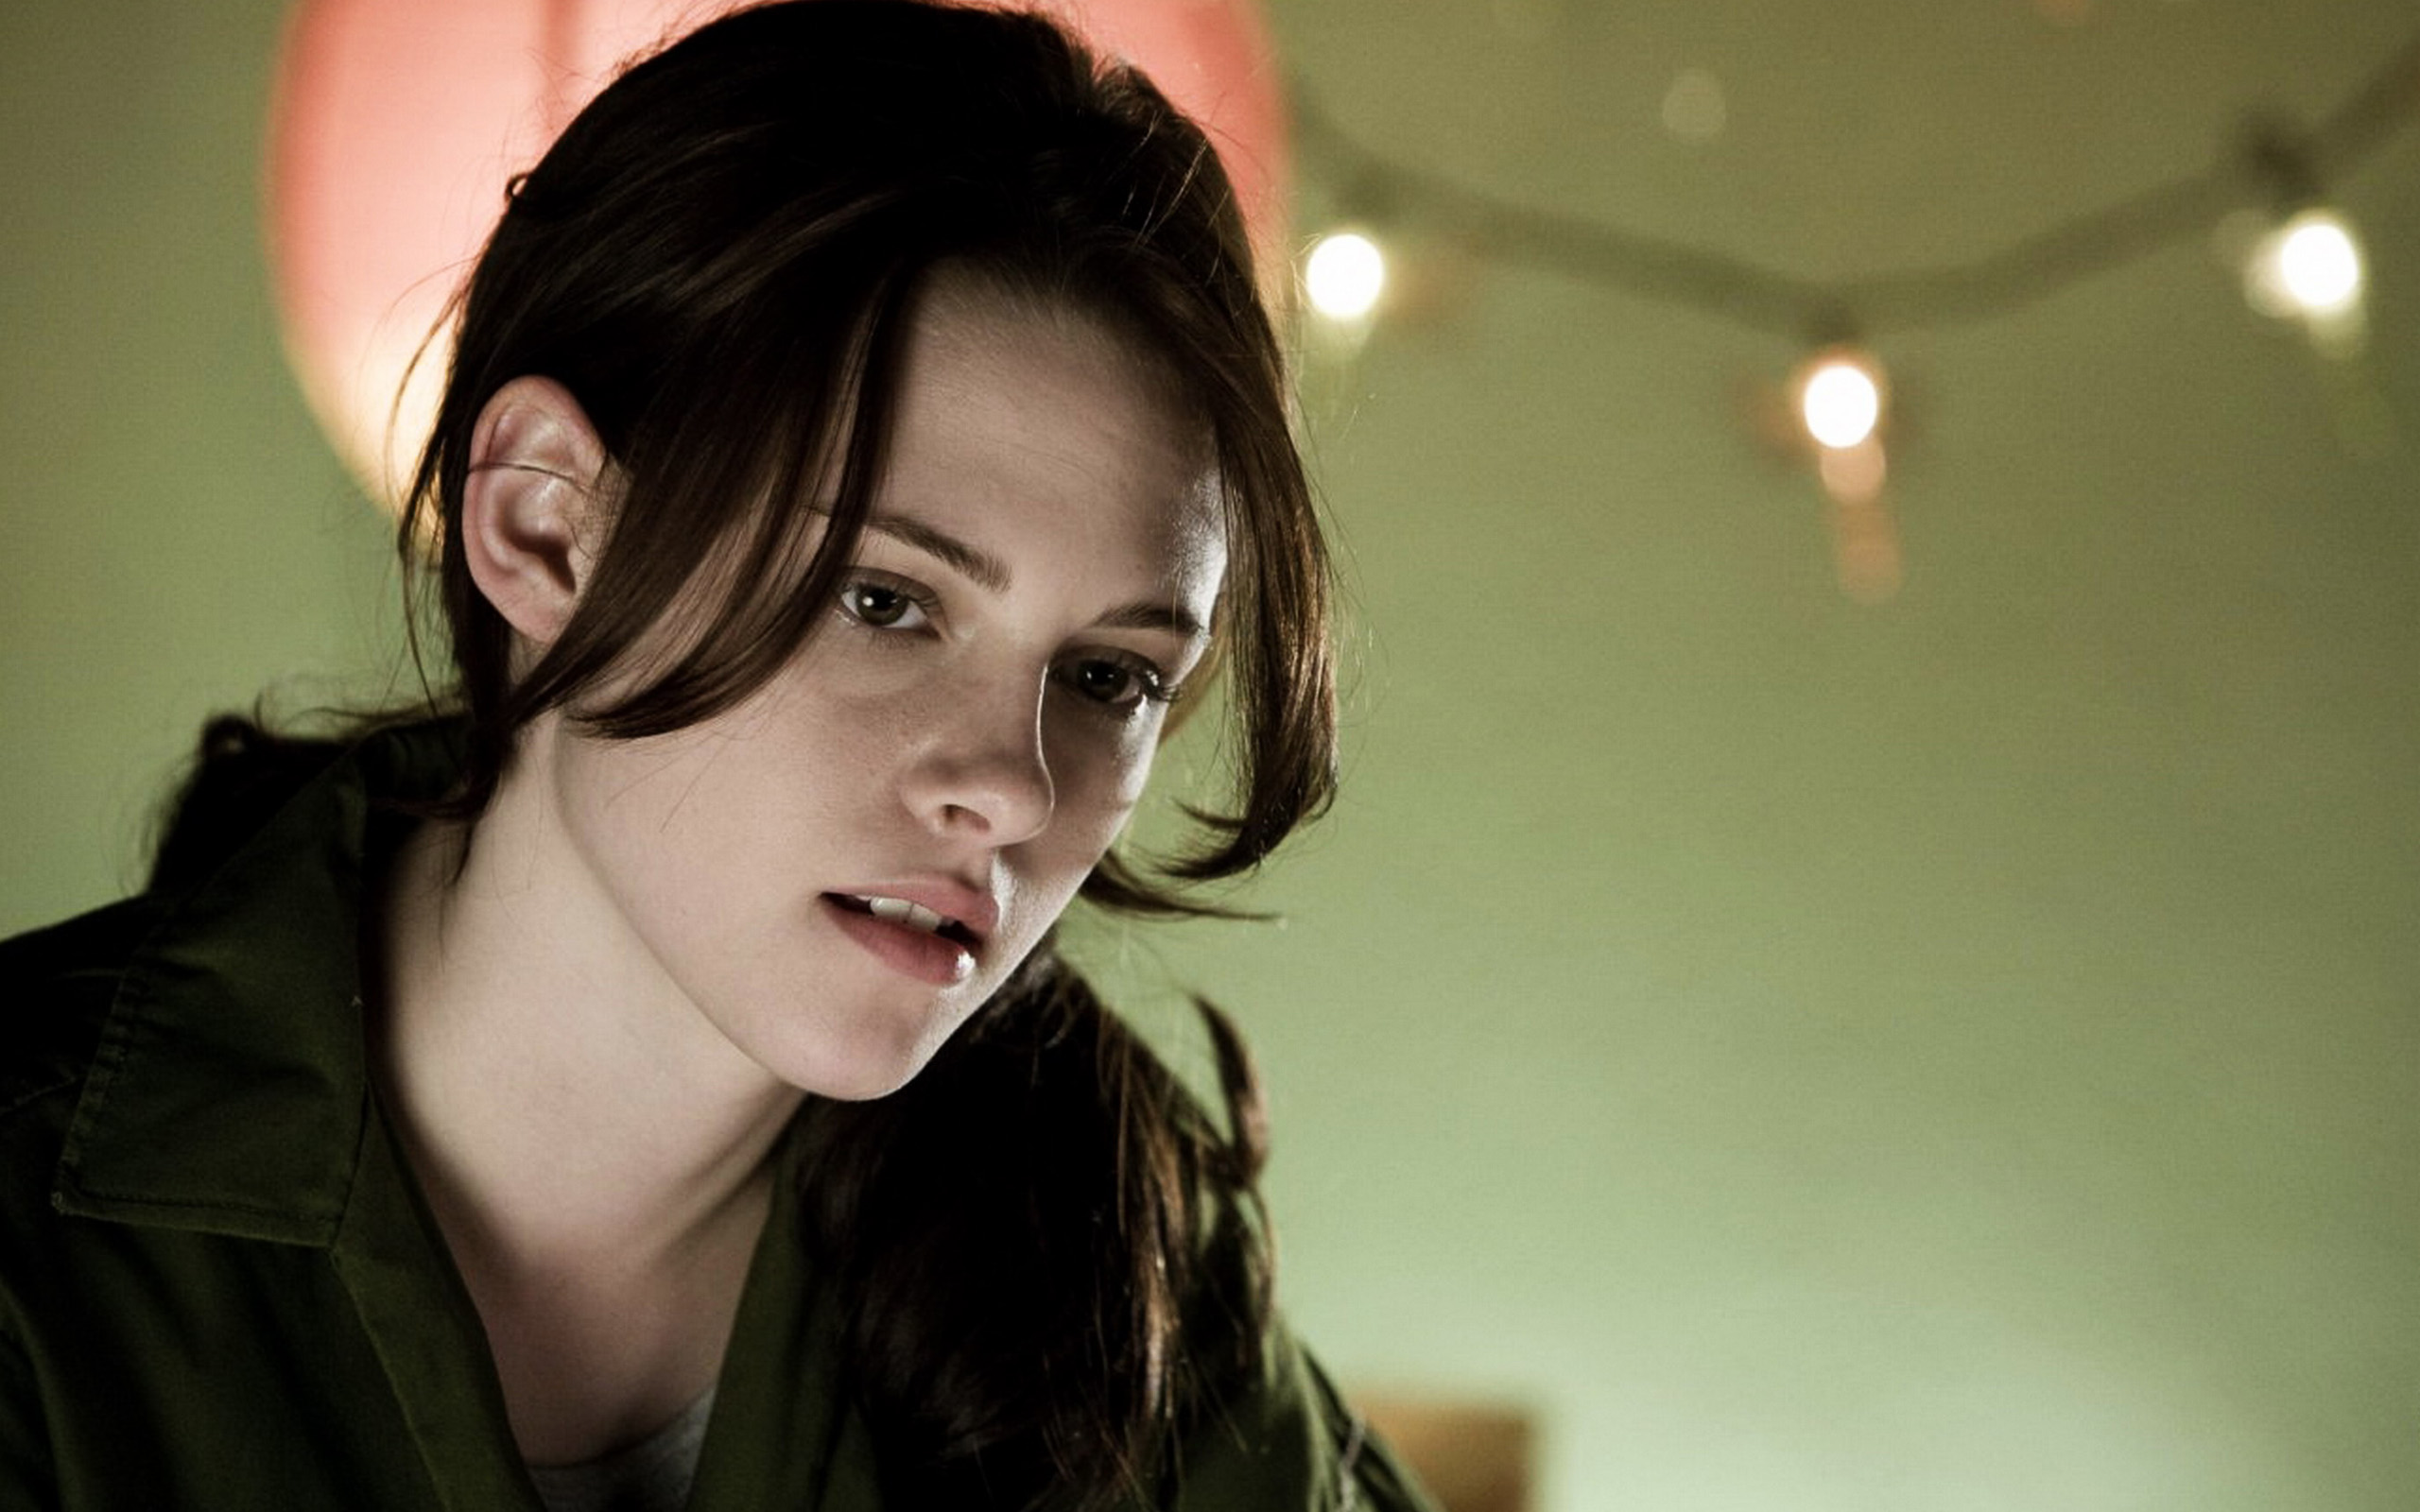 Kristen Stewart in Twilight 491.2 Kb